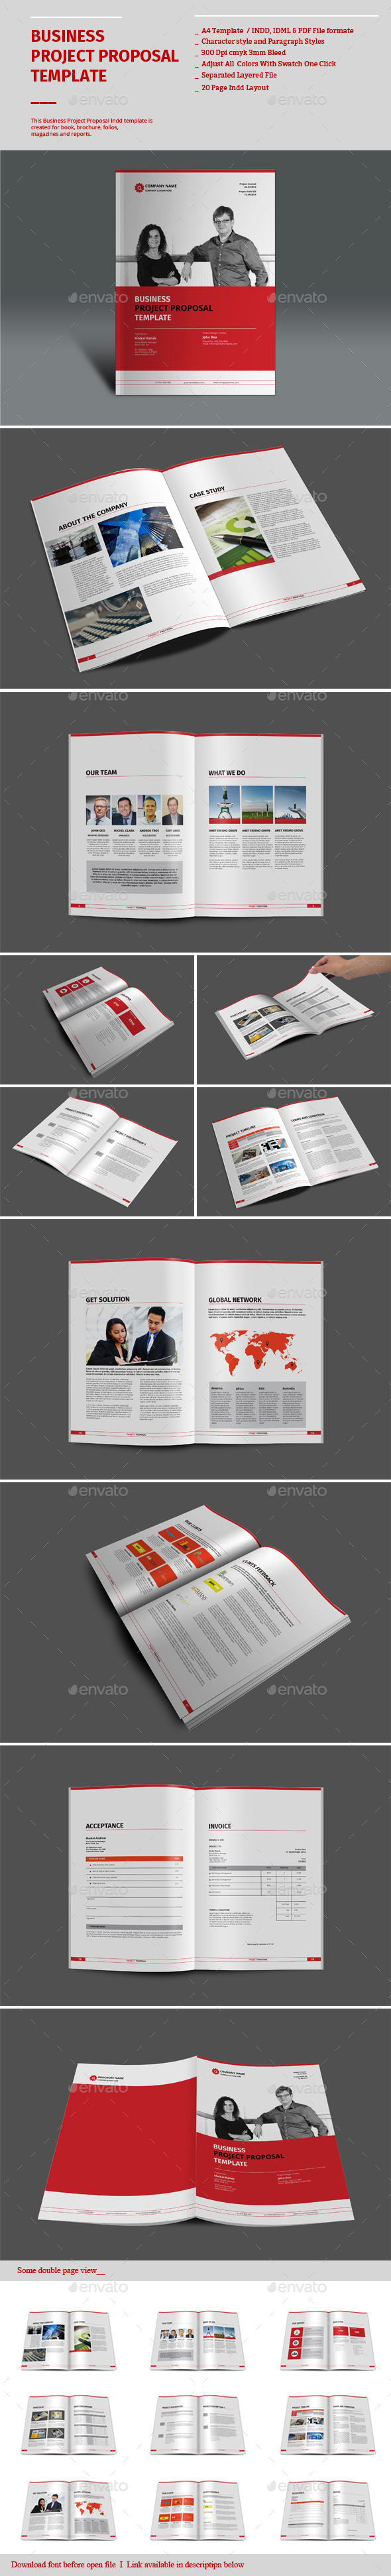 GraphicRiver Business Project Proposal Templates 8968105